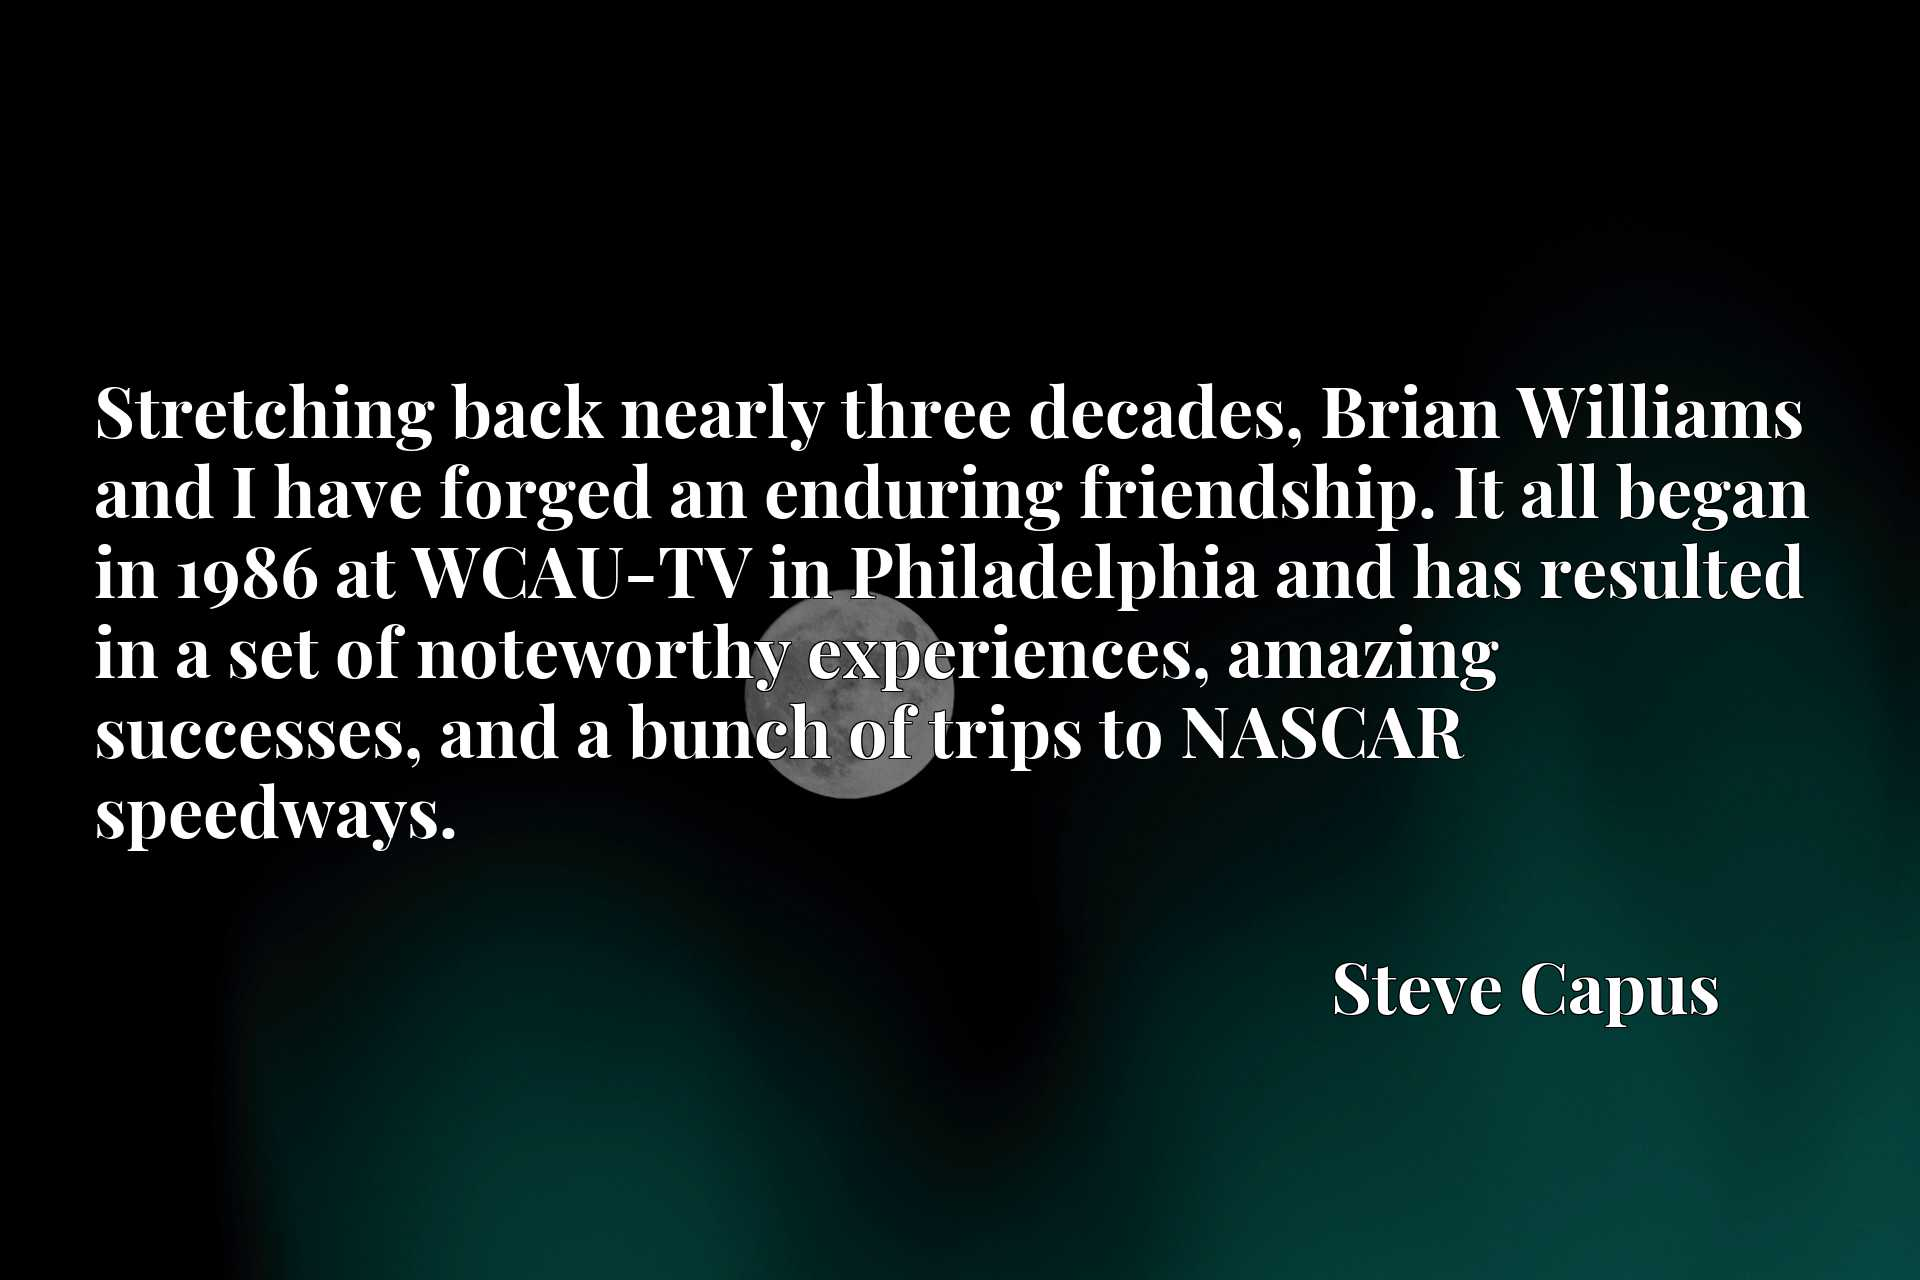 Stretching back nearly three decades, Brian Williams and I have forged an enduring friendship. It all began in 1986 at WCAU-TV in Philadelphia and has resulted in a set of noteworthy experiences, amazing successes, and a bunch of trips to NASCAR speedways.